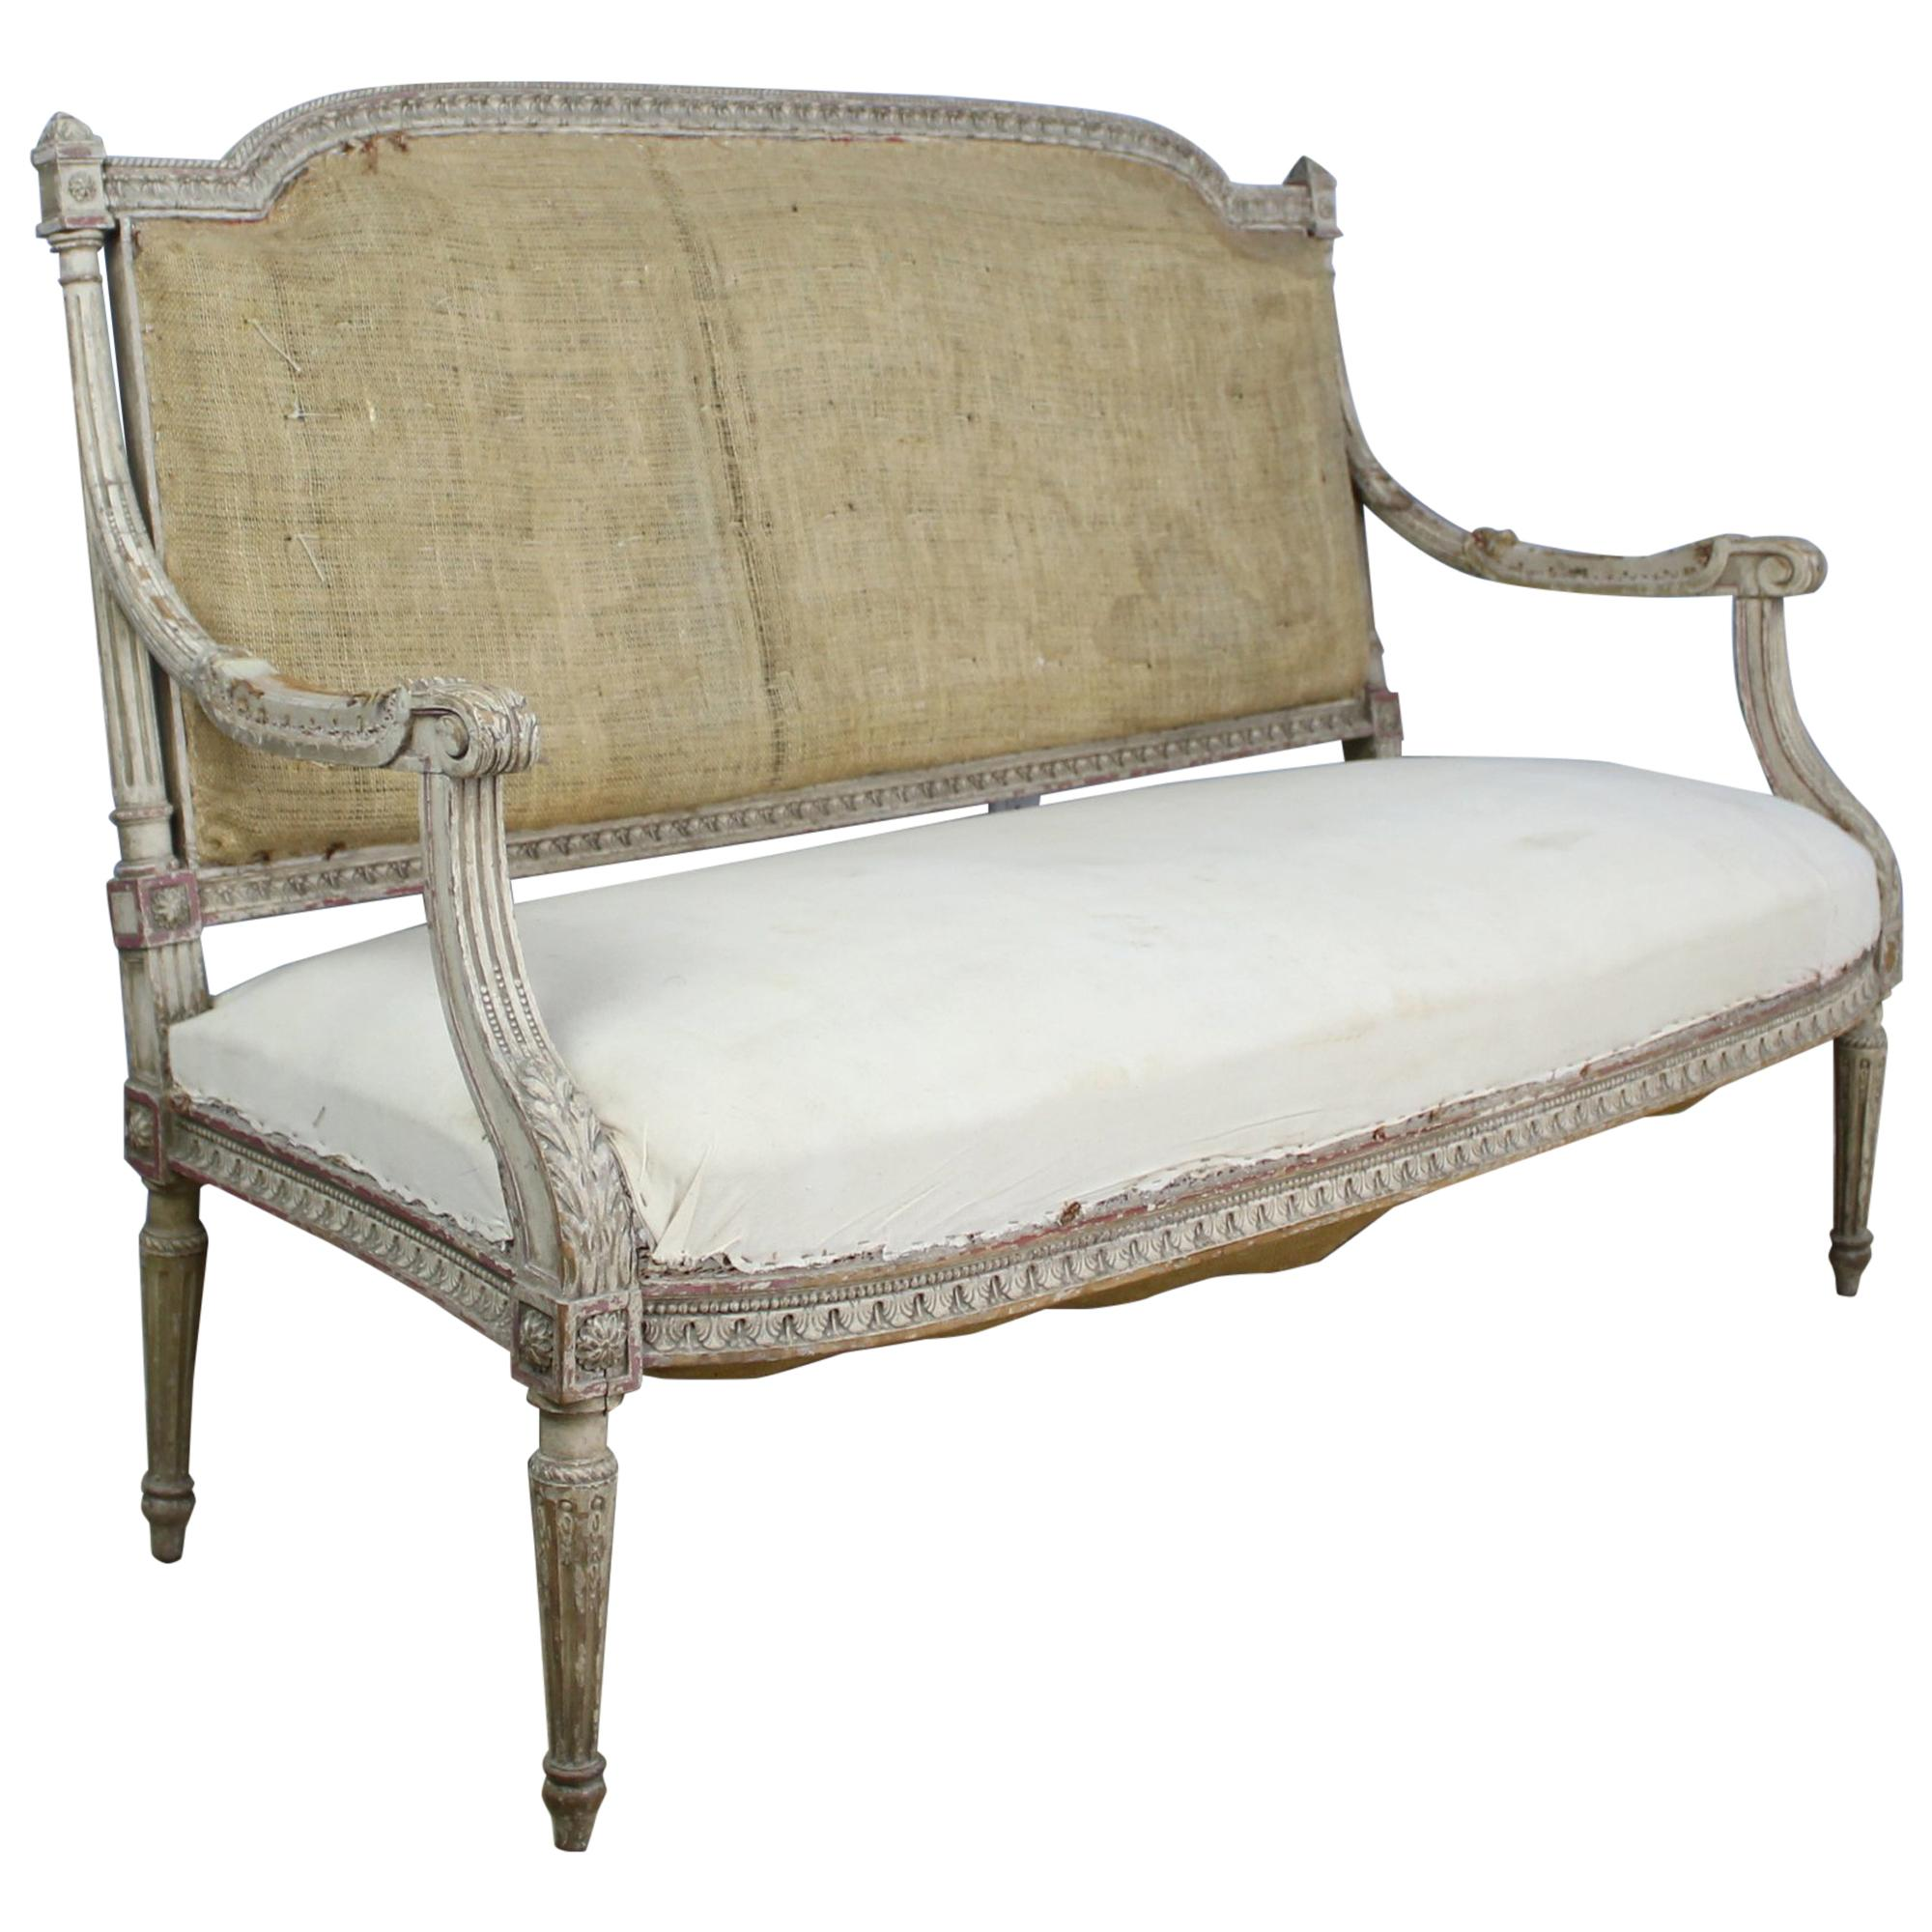 Delicieux Gustavian Sofa, Original Horsehair Stuffing And Original Paint For Sale